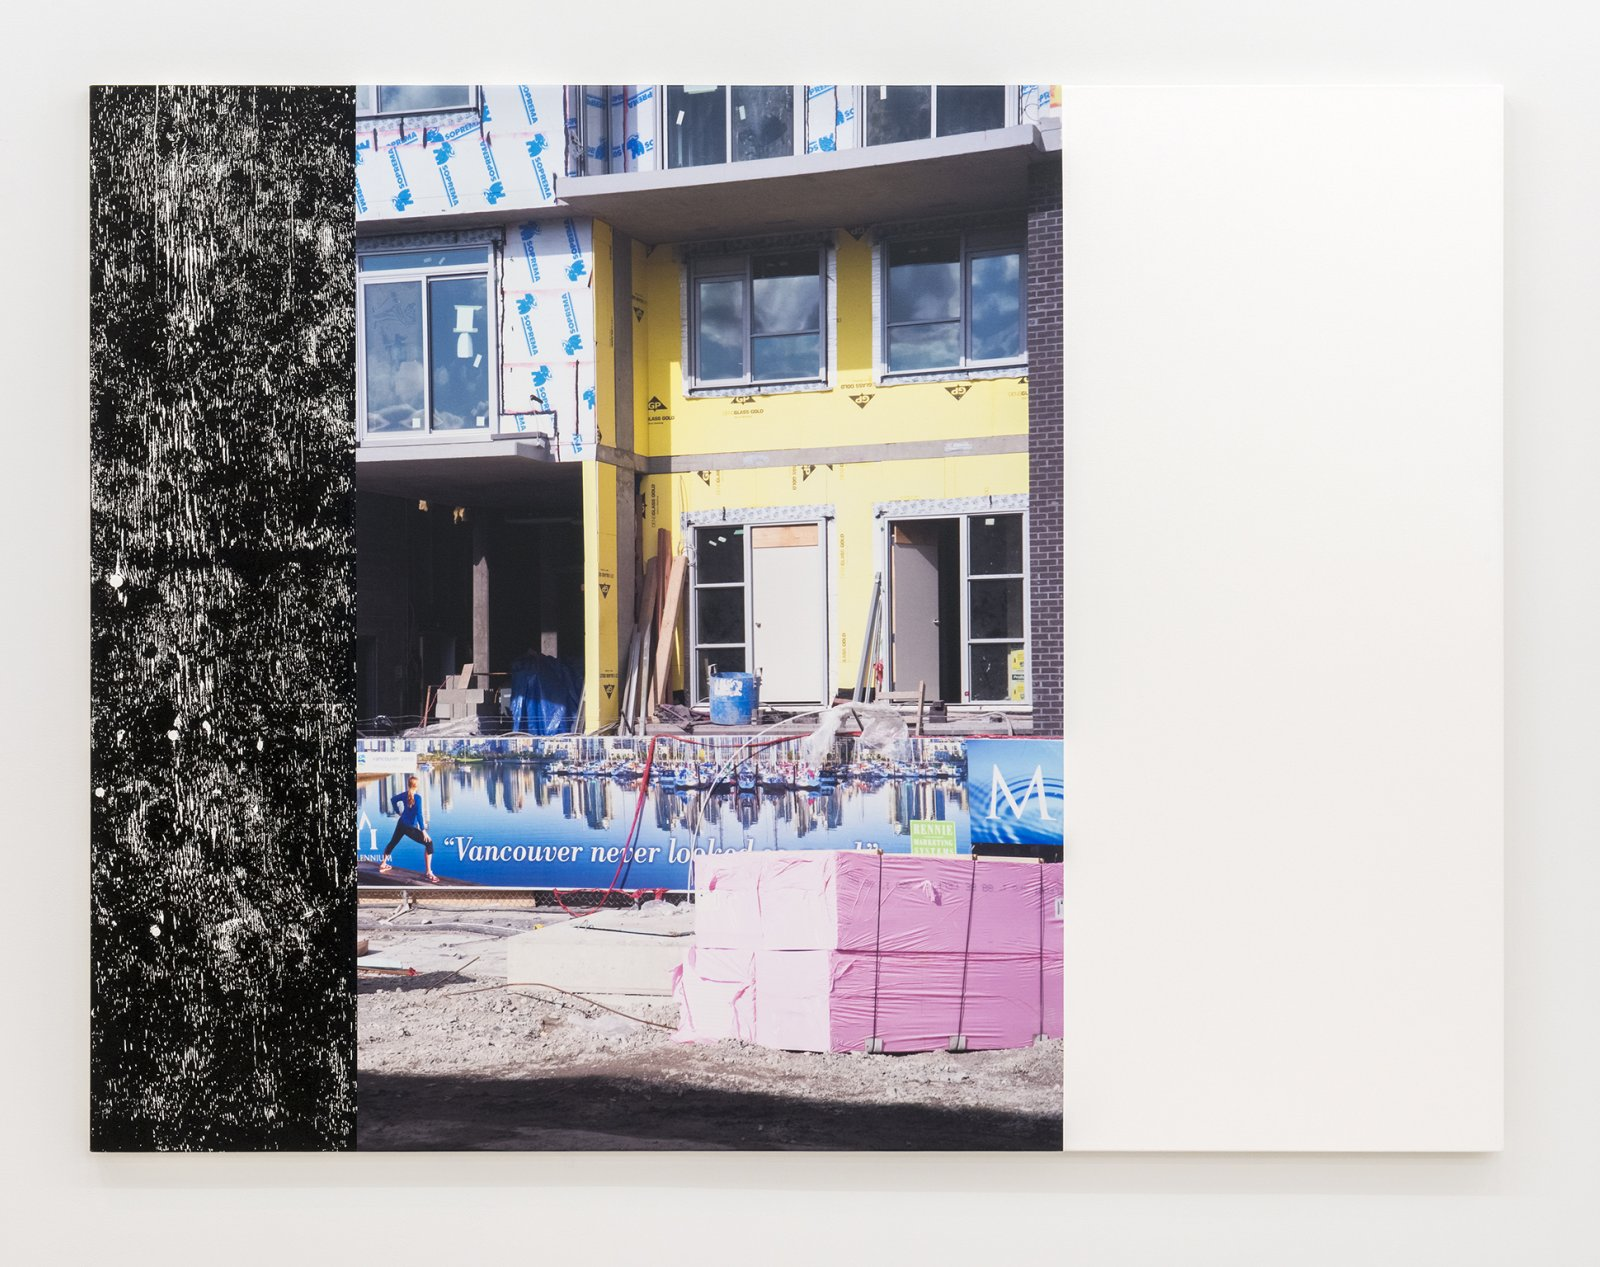 Ian Wallace, Construction Site (Olympic Village) I, 2011, photolaminate and acrylic on canvas, 72 x 96 in. (183 x 244 cm) by Ian Wallace